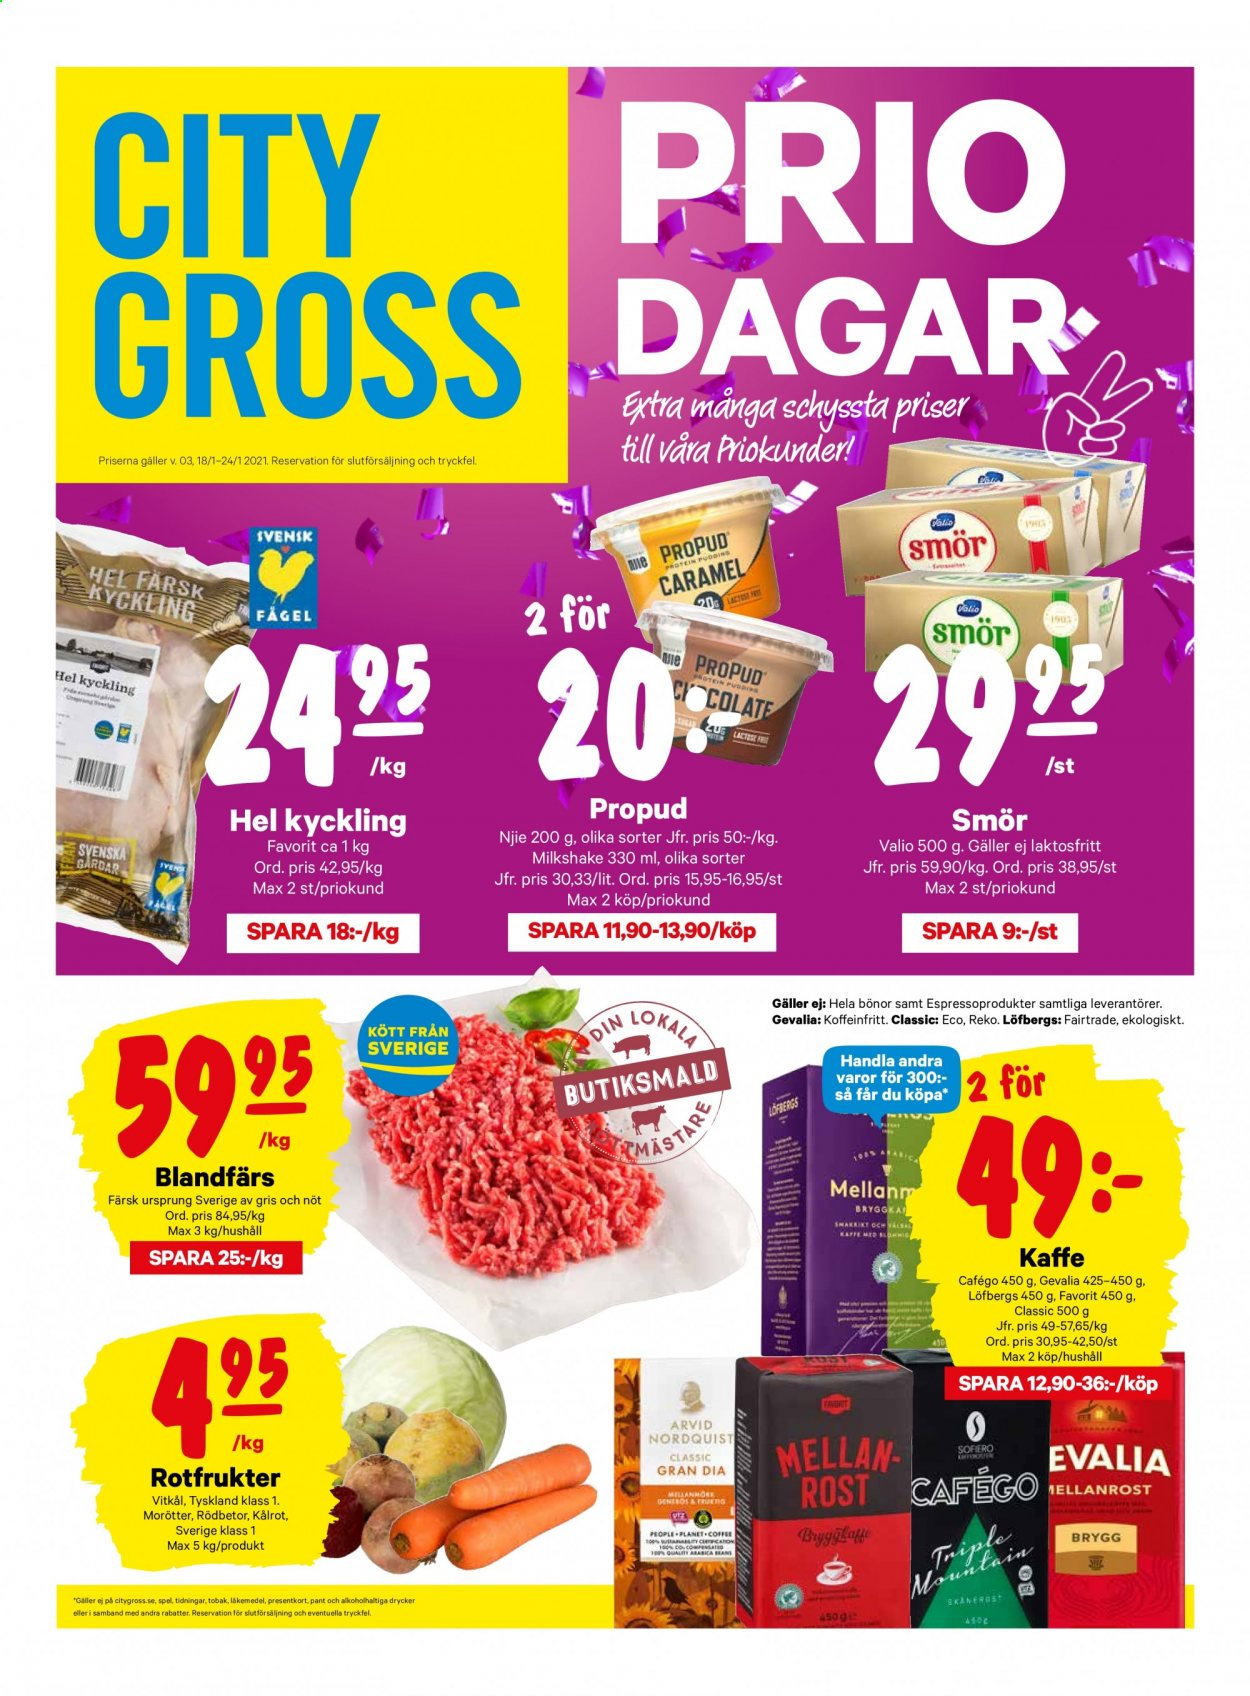 City Gross reklamblad - 25/1 2021 - 31/1 2021. Sida 1.